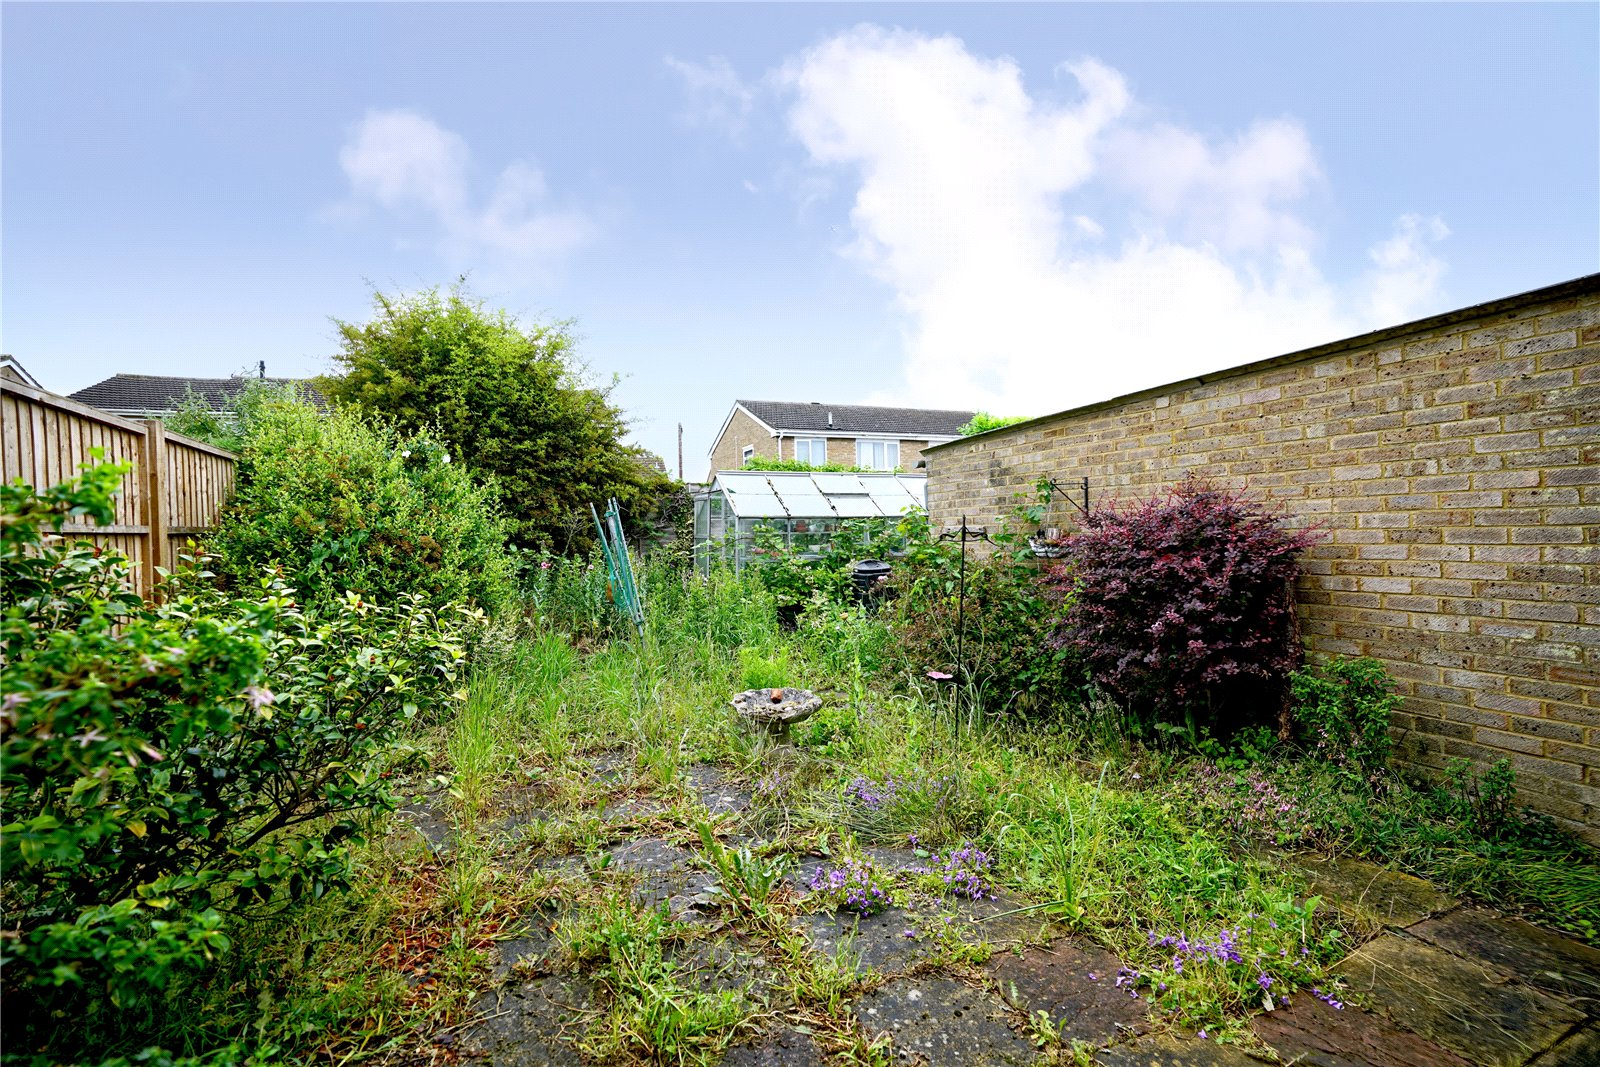 3 bed house for sale in Kenilworth Close, Eaton Socon 4